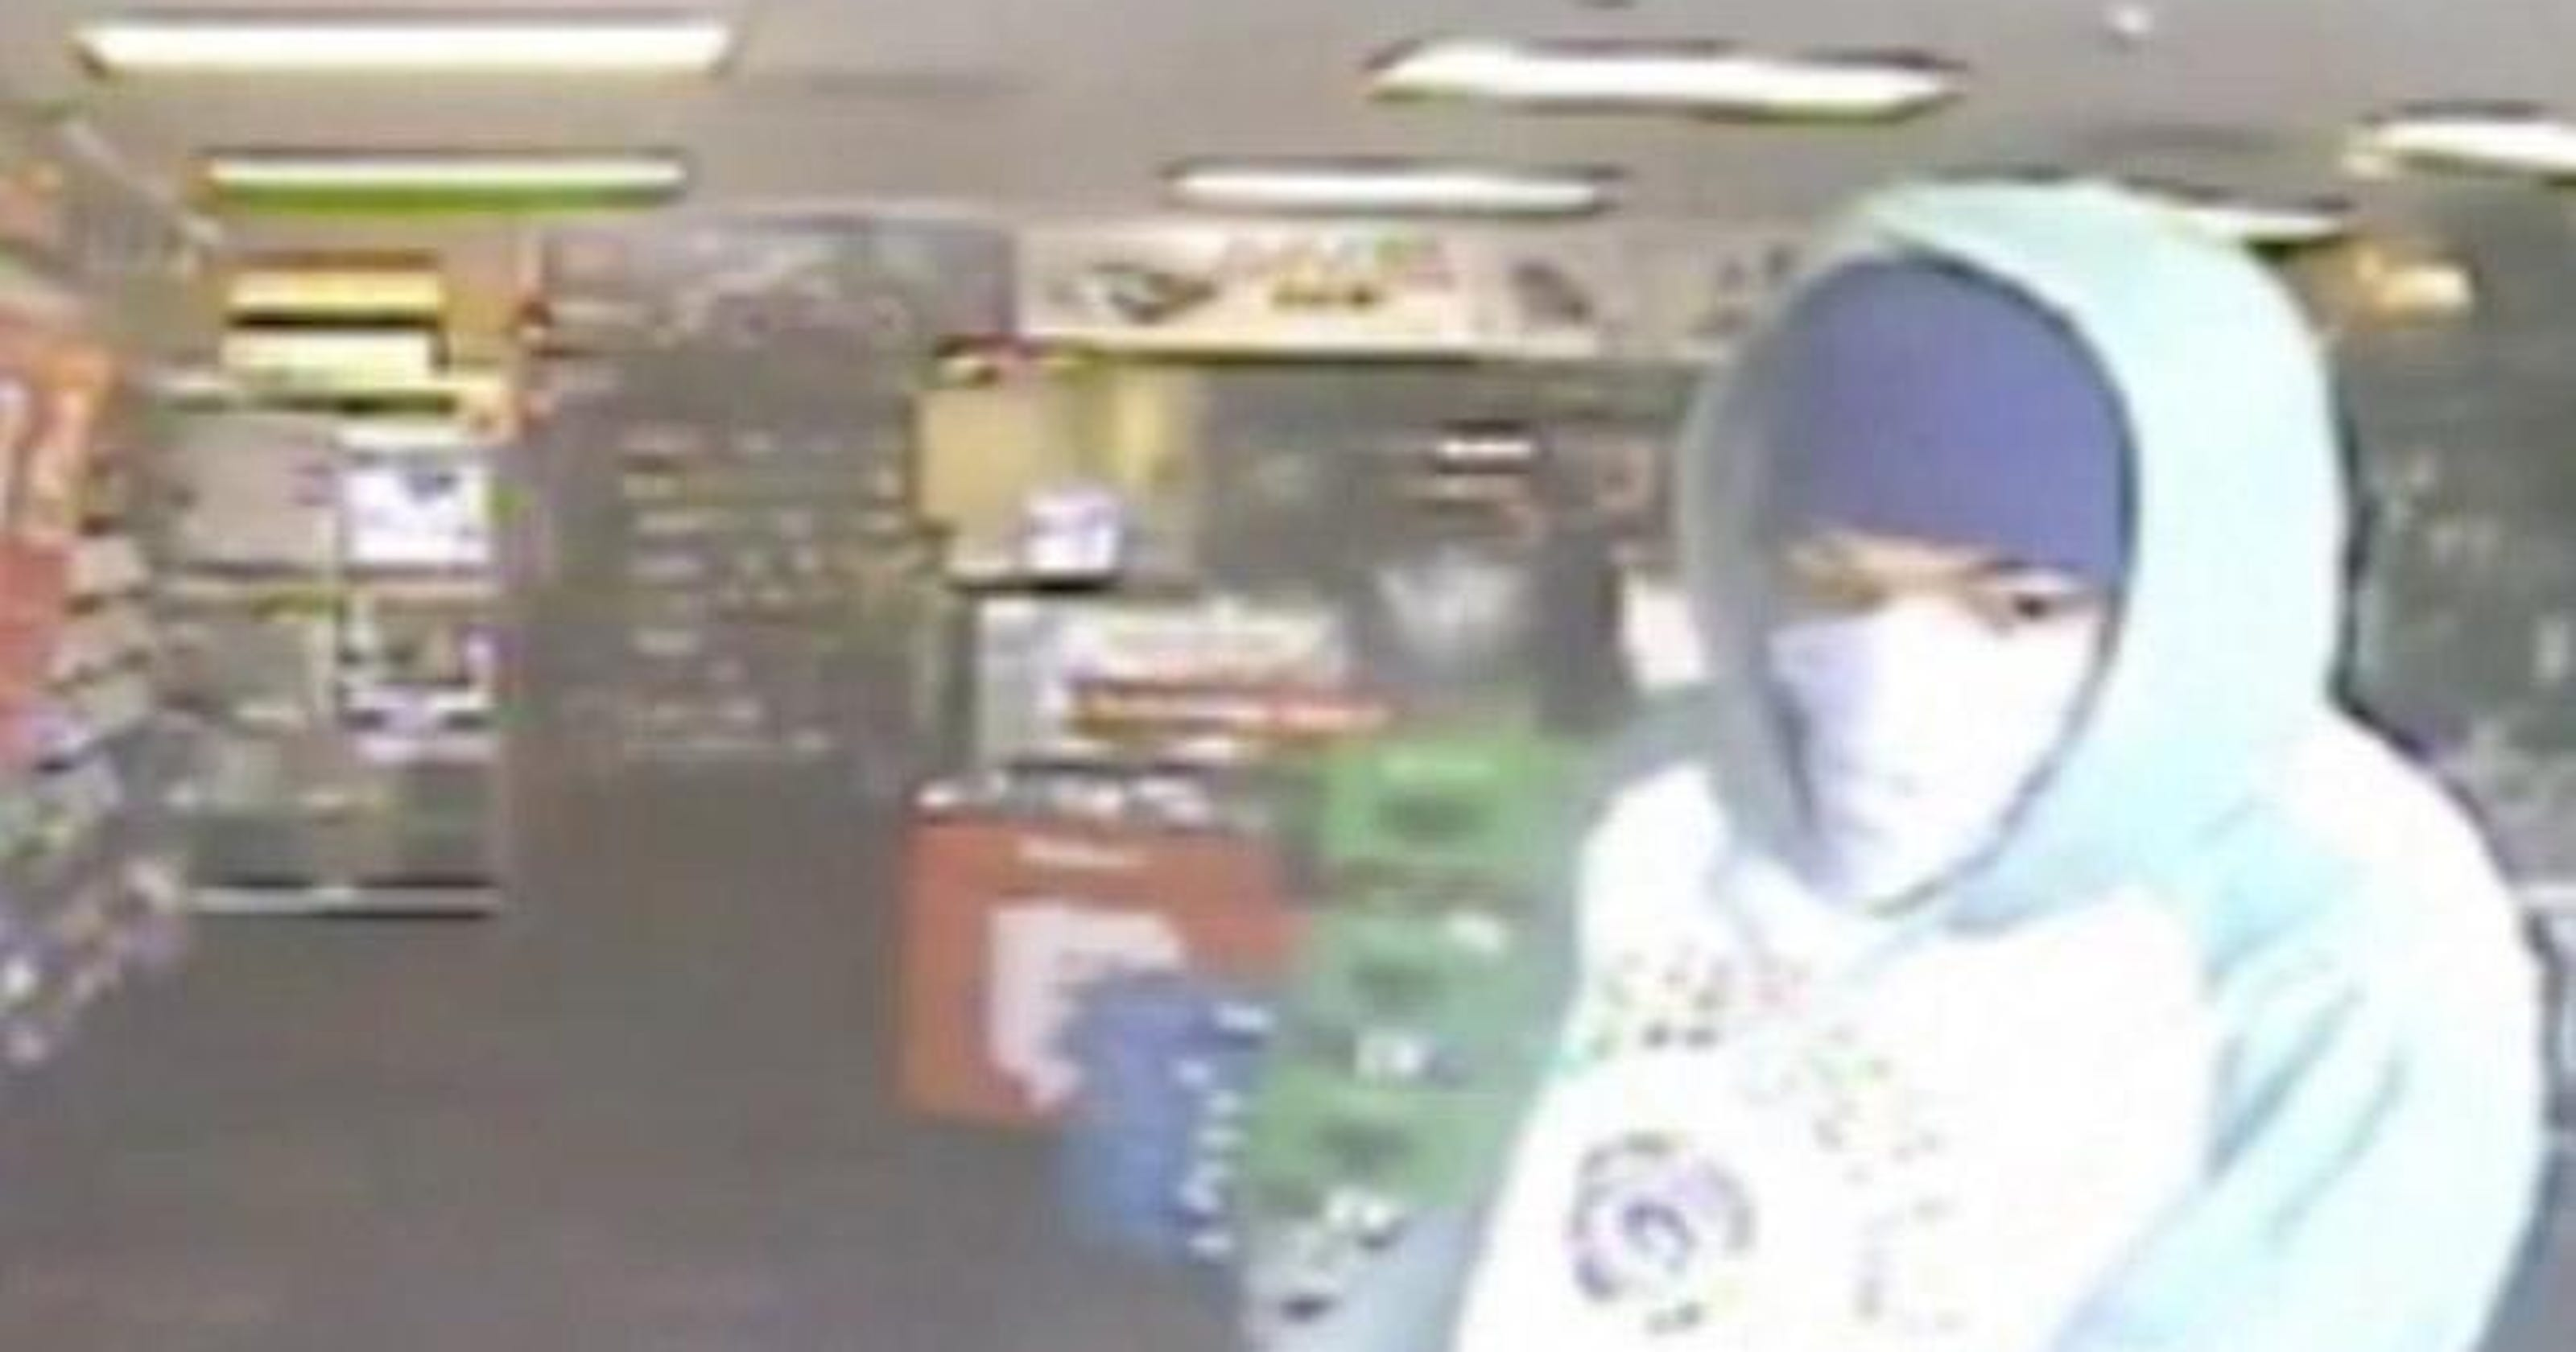 Surveillance video shows man who robbed GameStop with knife